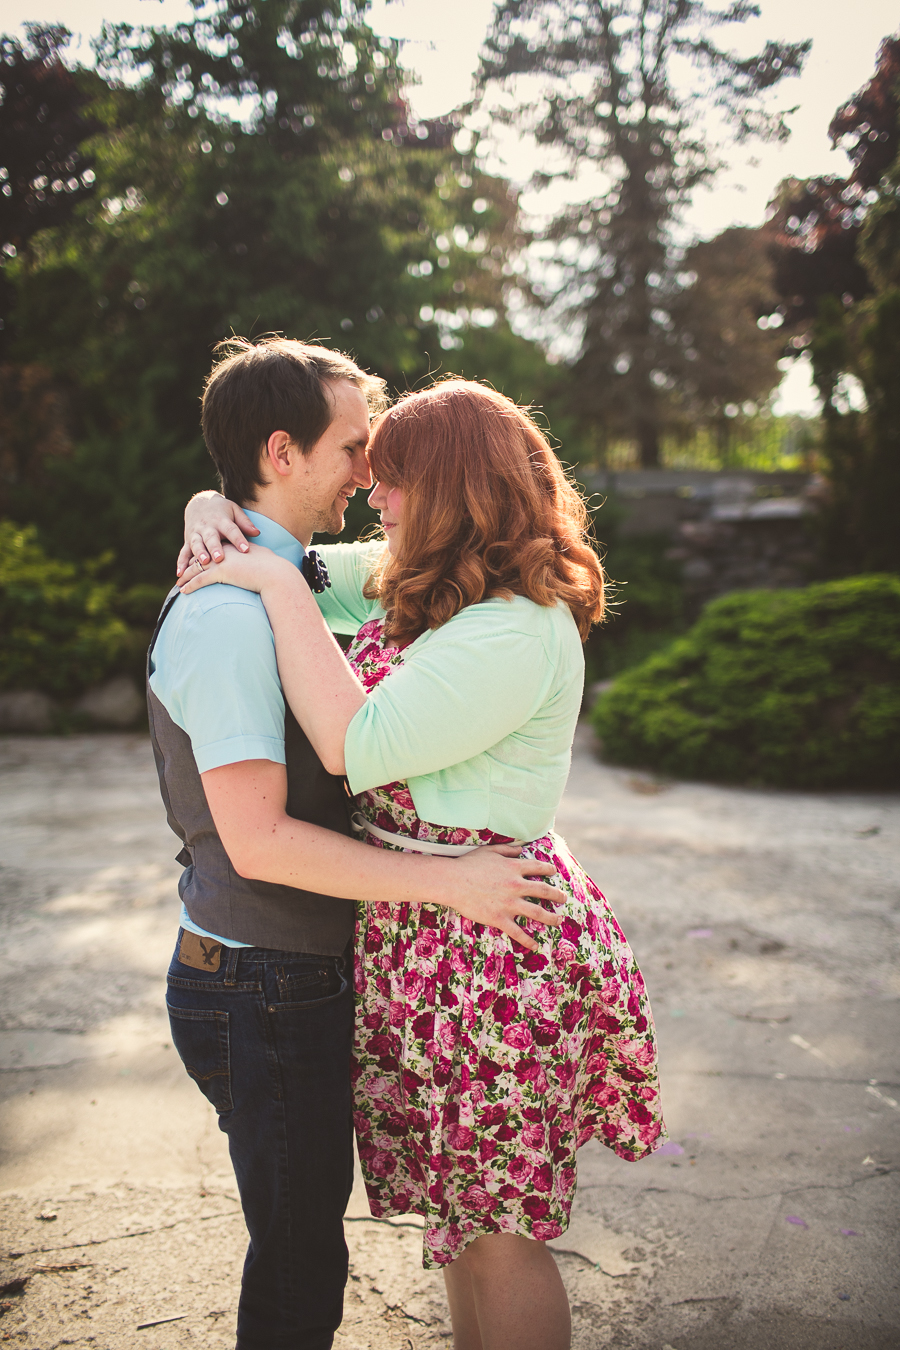 best ontario engagement photography, peterborough ontario wedding photography, peterborough ontario engagement photographer, peterborough engagement photographer, oshawa engagement photographer, destination wedding photographer, best wedding photographer, best engagement photographer